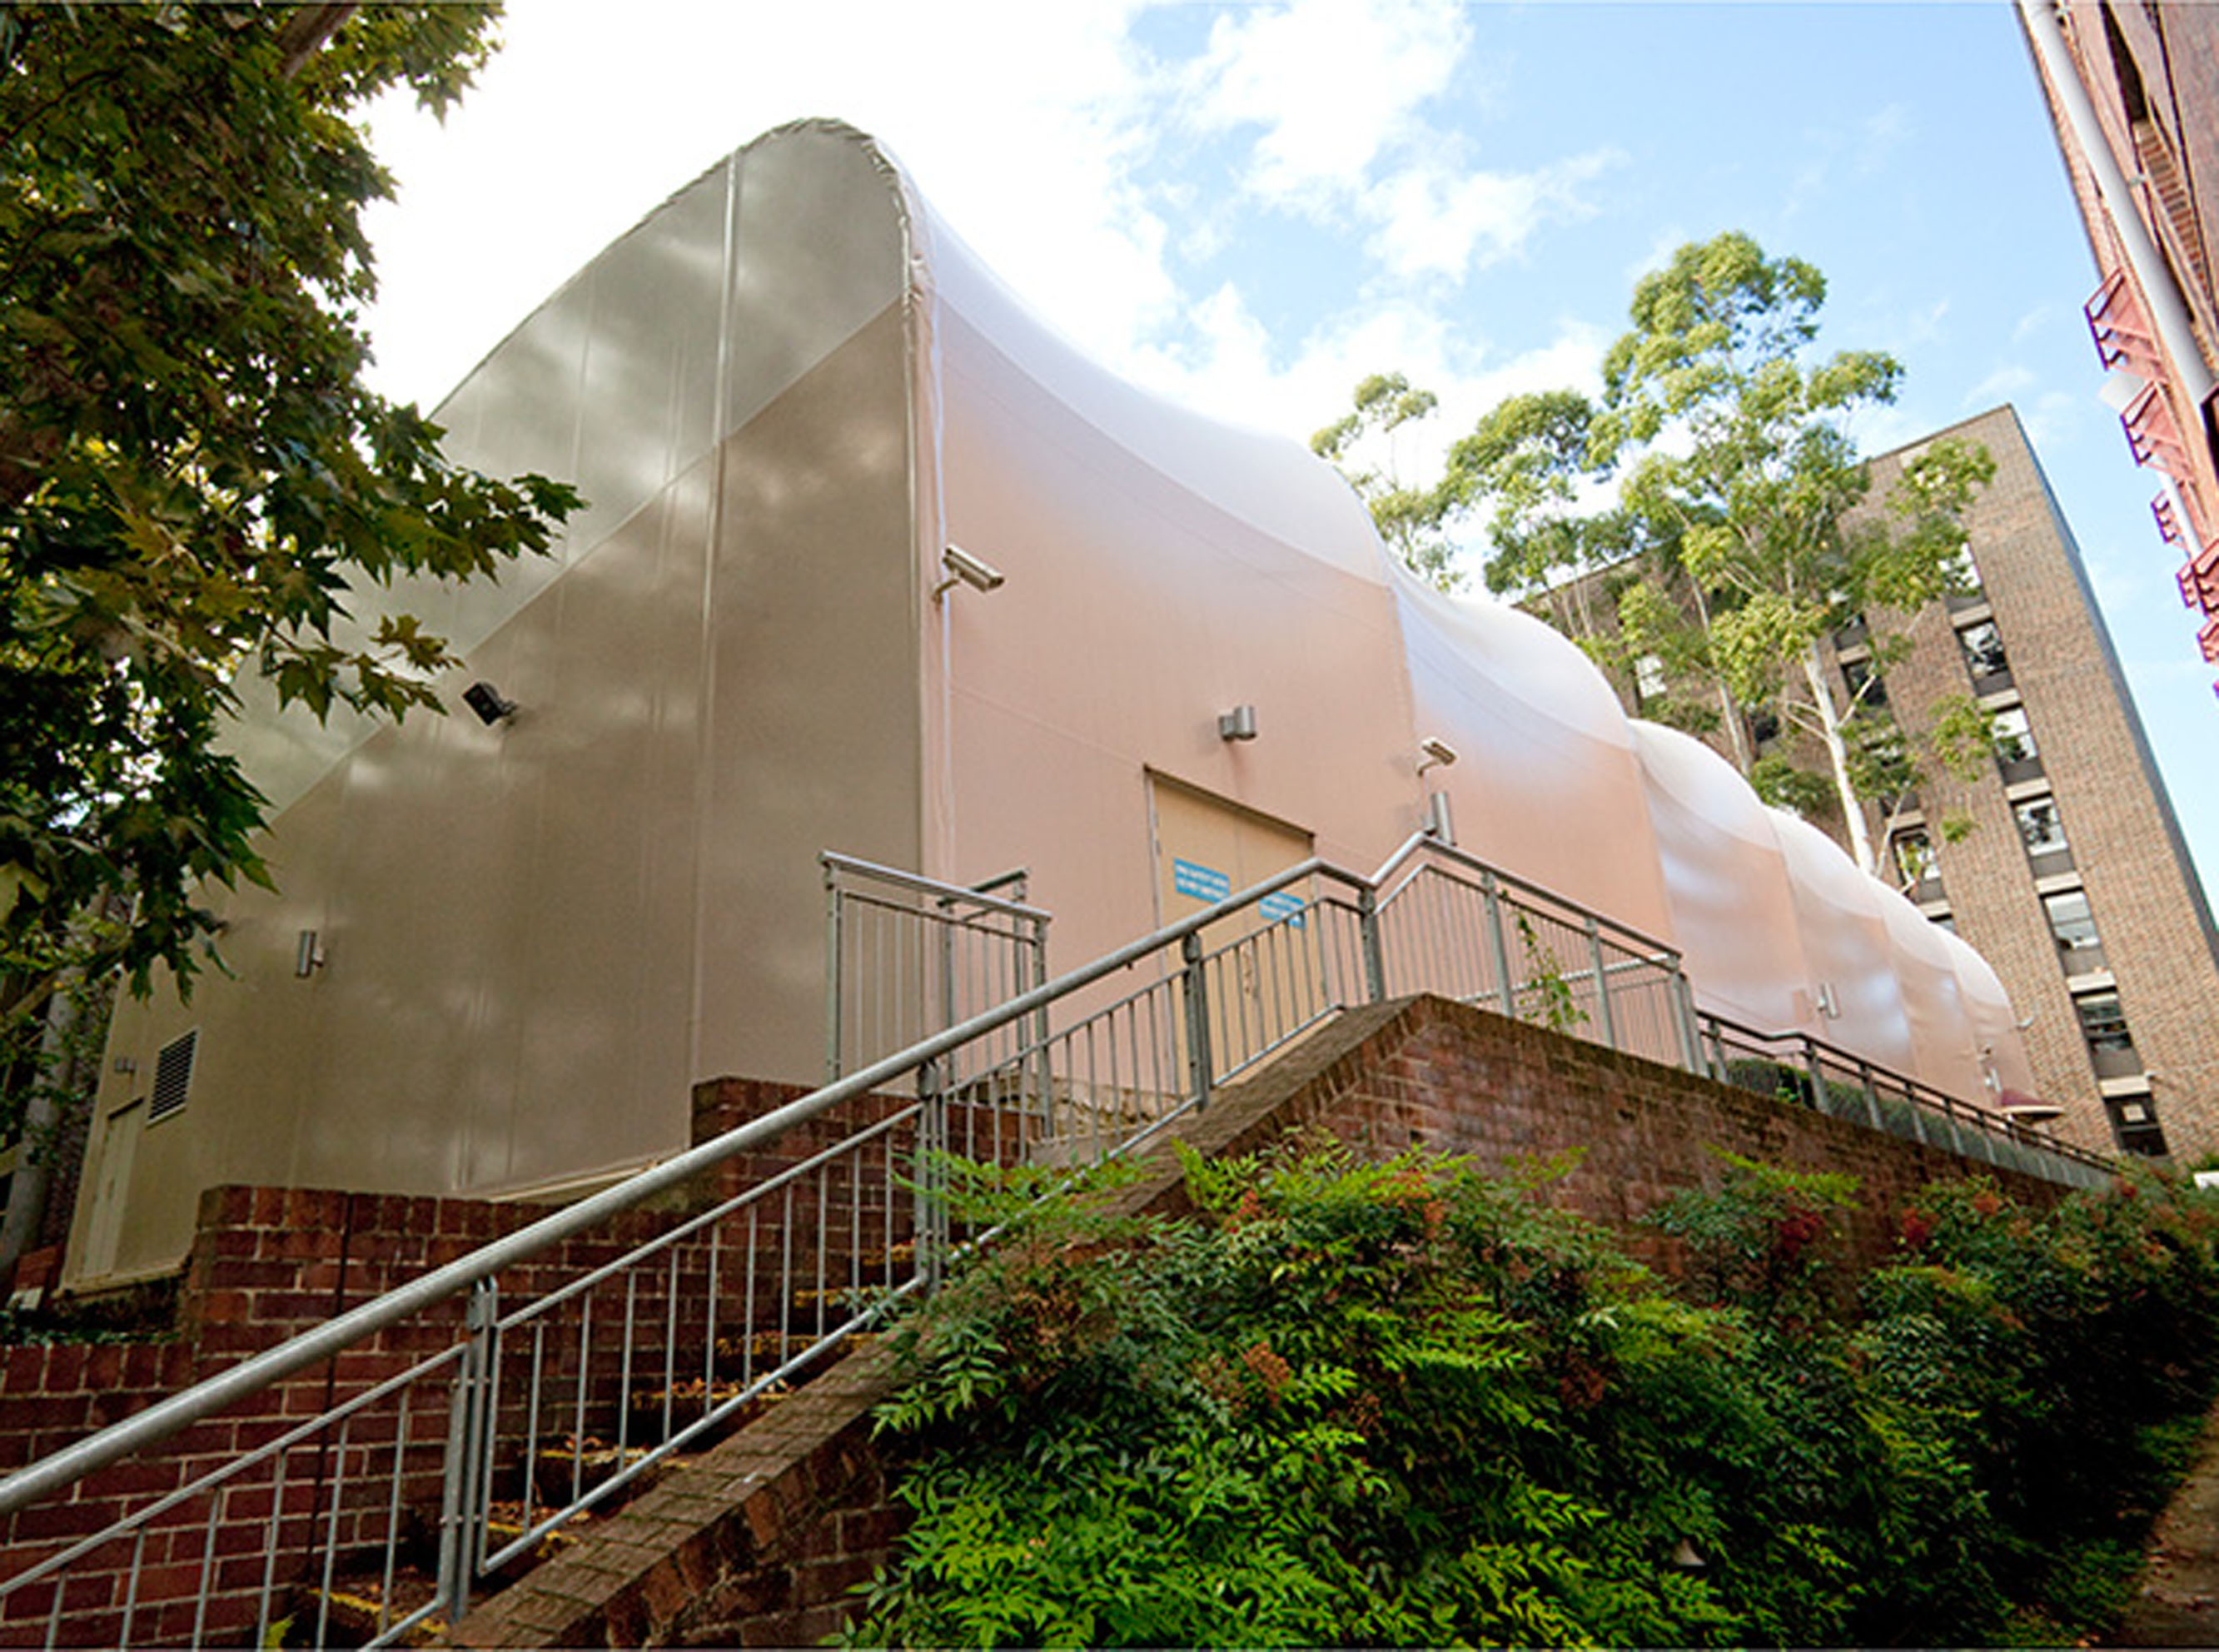 11120-macquarie-uni-pvc-2012-fs-1